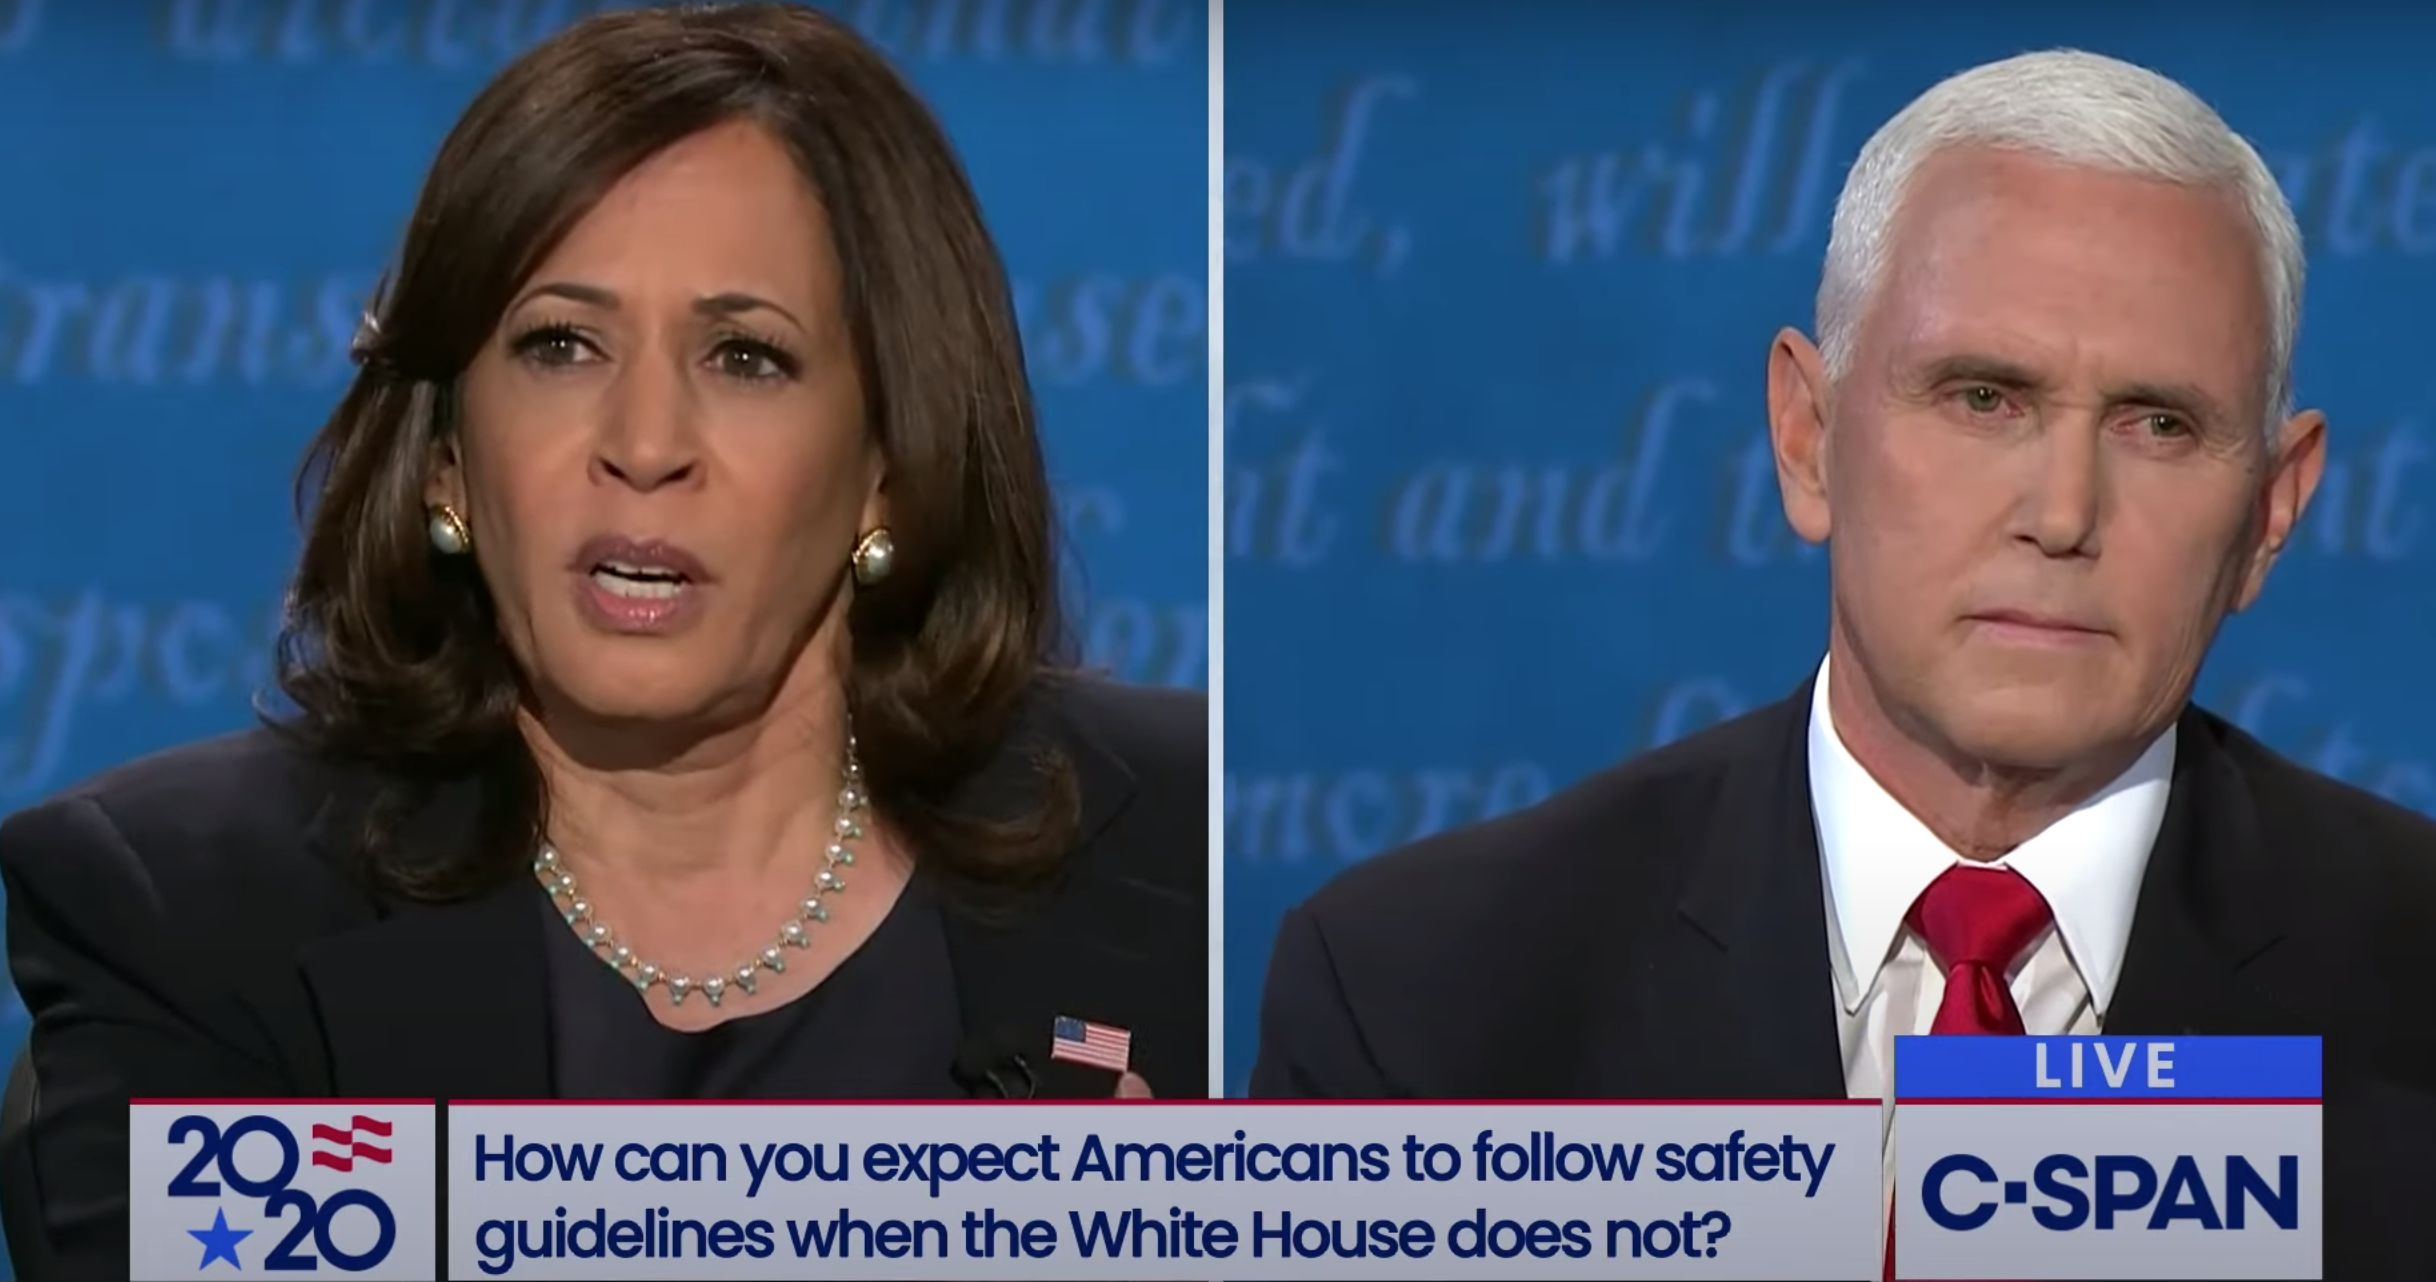 Kamala Harris' Performance In The Debate Highlights Larger Issue Around 'Manterruption'